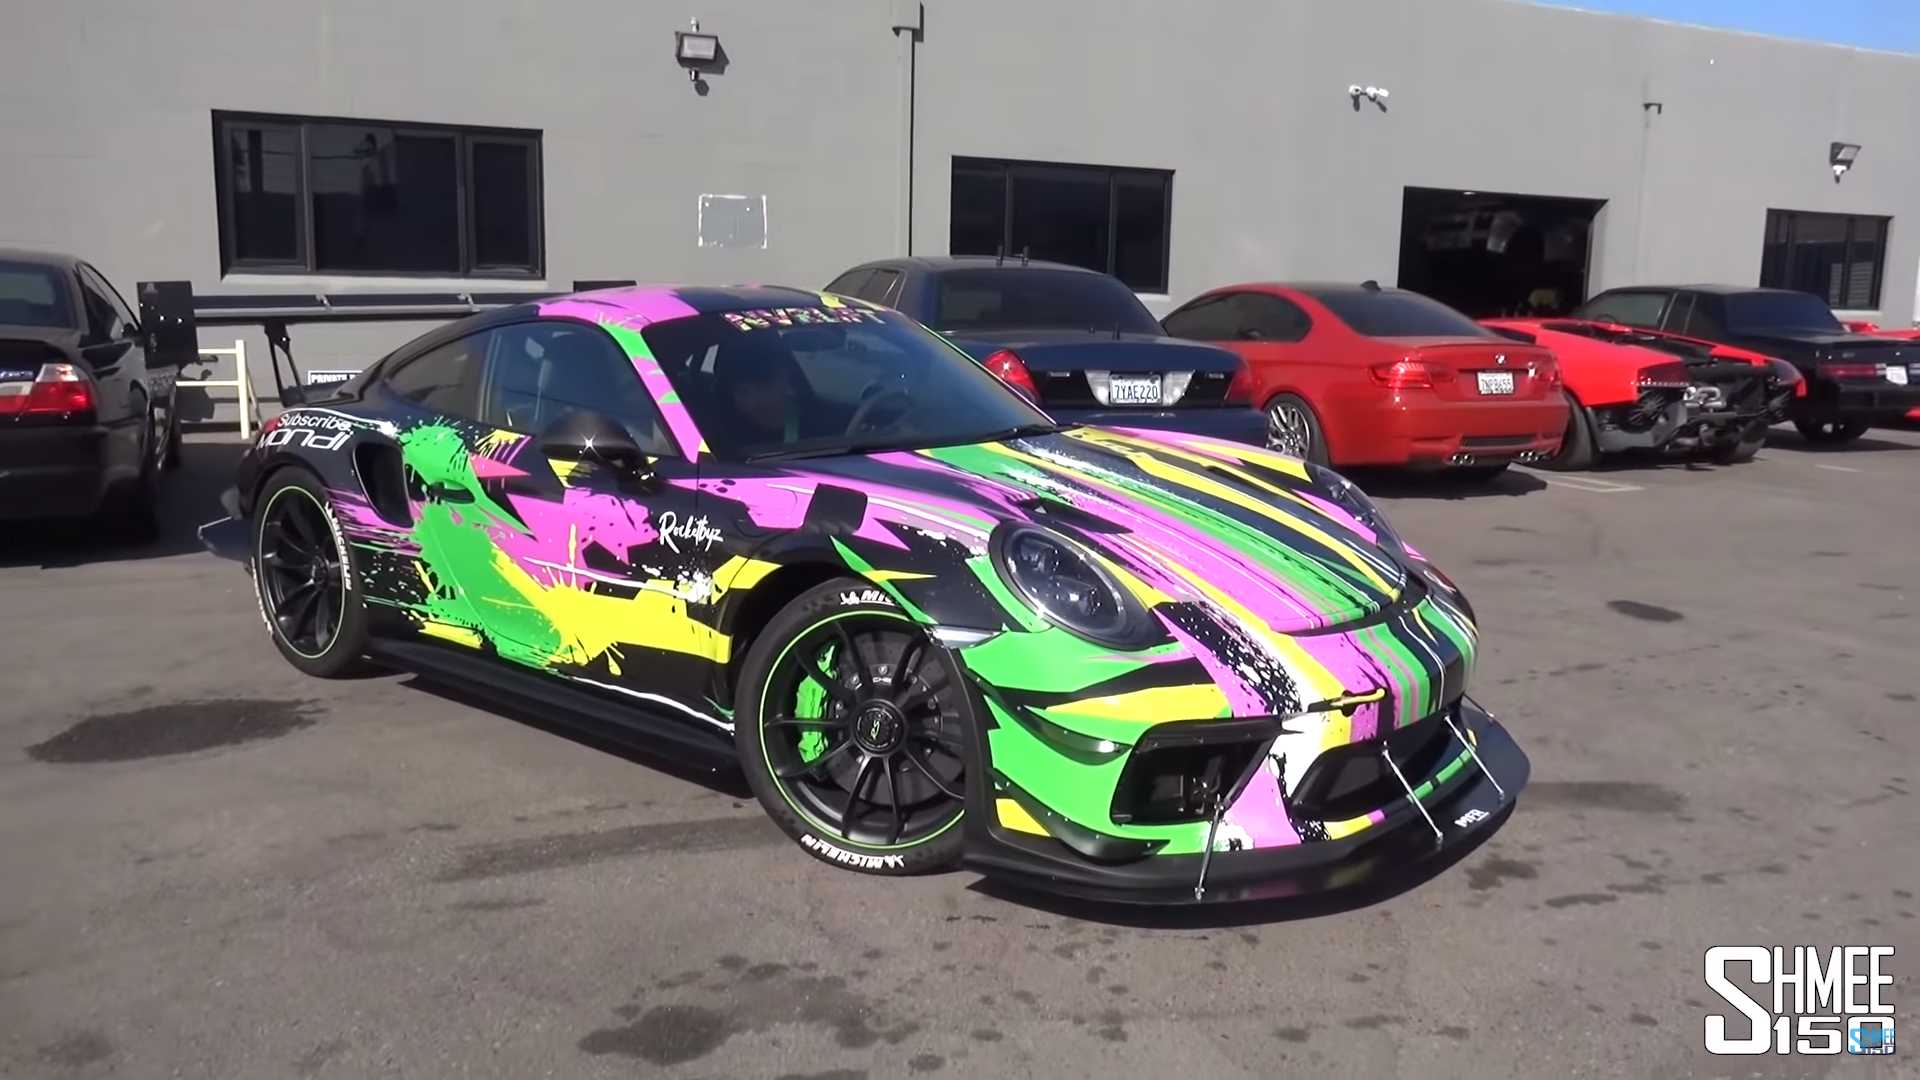 Bonkers Porsche 911 Gt3 Twin Turbo Has 800 Hp And Is Getting More